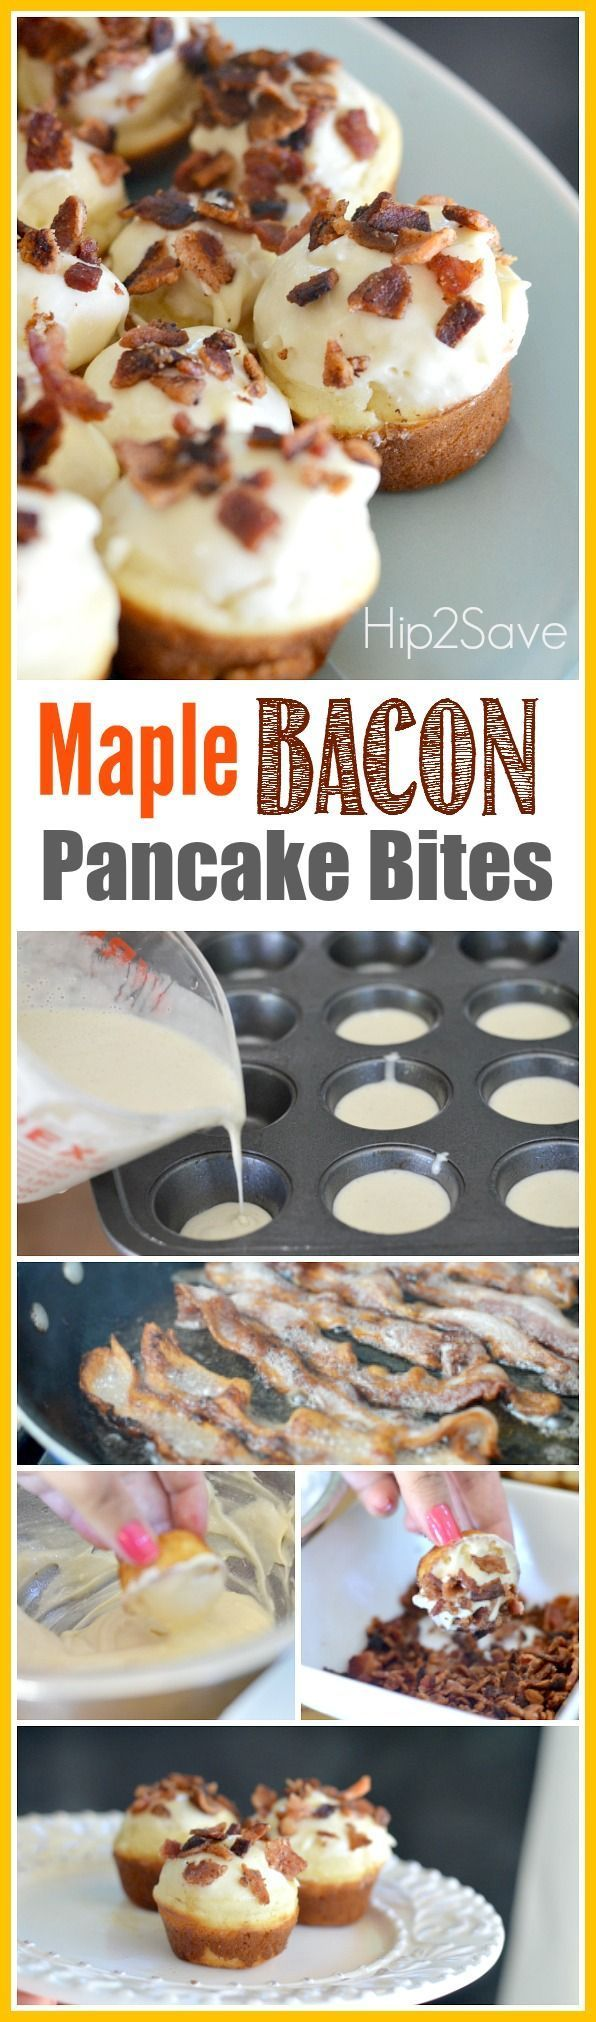 Maple Bacon Pancake Bites. A wonderful dessert recipe. If you like bacon and you like pancakes, try combining these two yummy foods into these great tasting Maple Bacon Pancake Bites. Just place the ingredients in a mini muffin tin and the result is like little clouds of salty and sweet heaven!